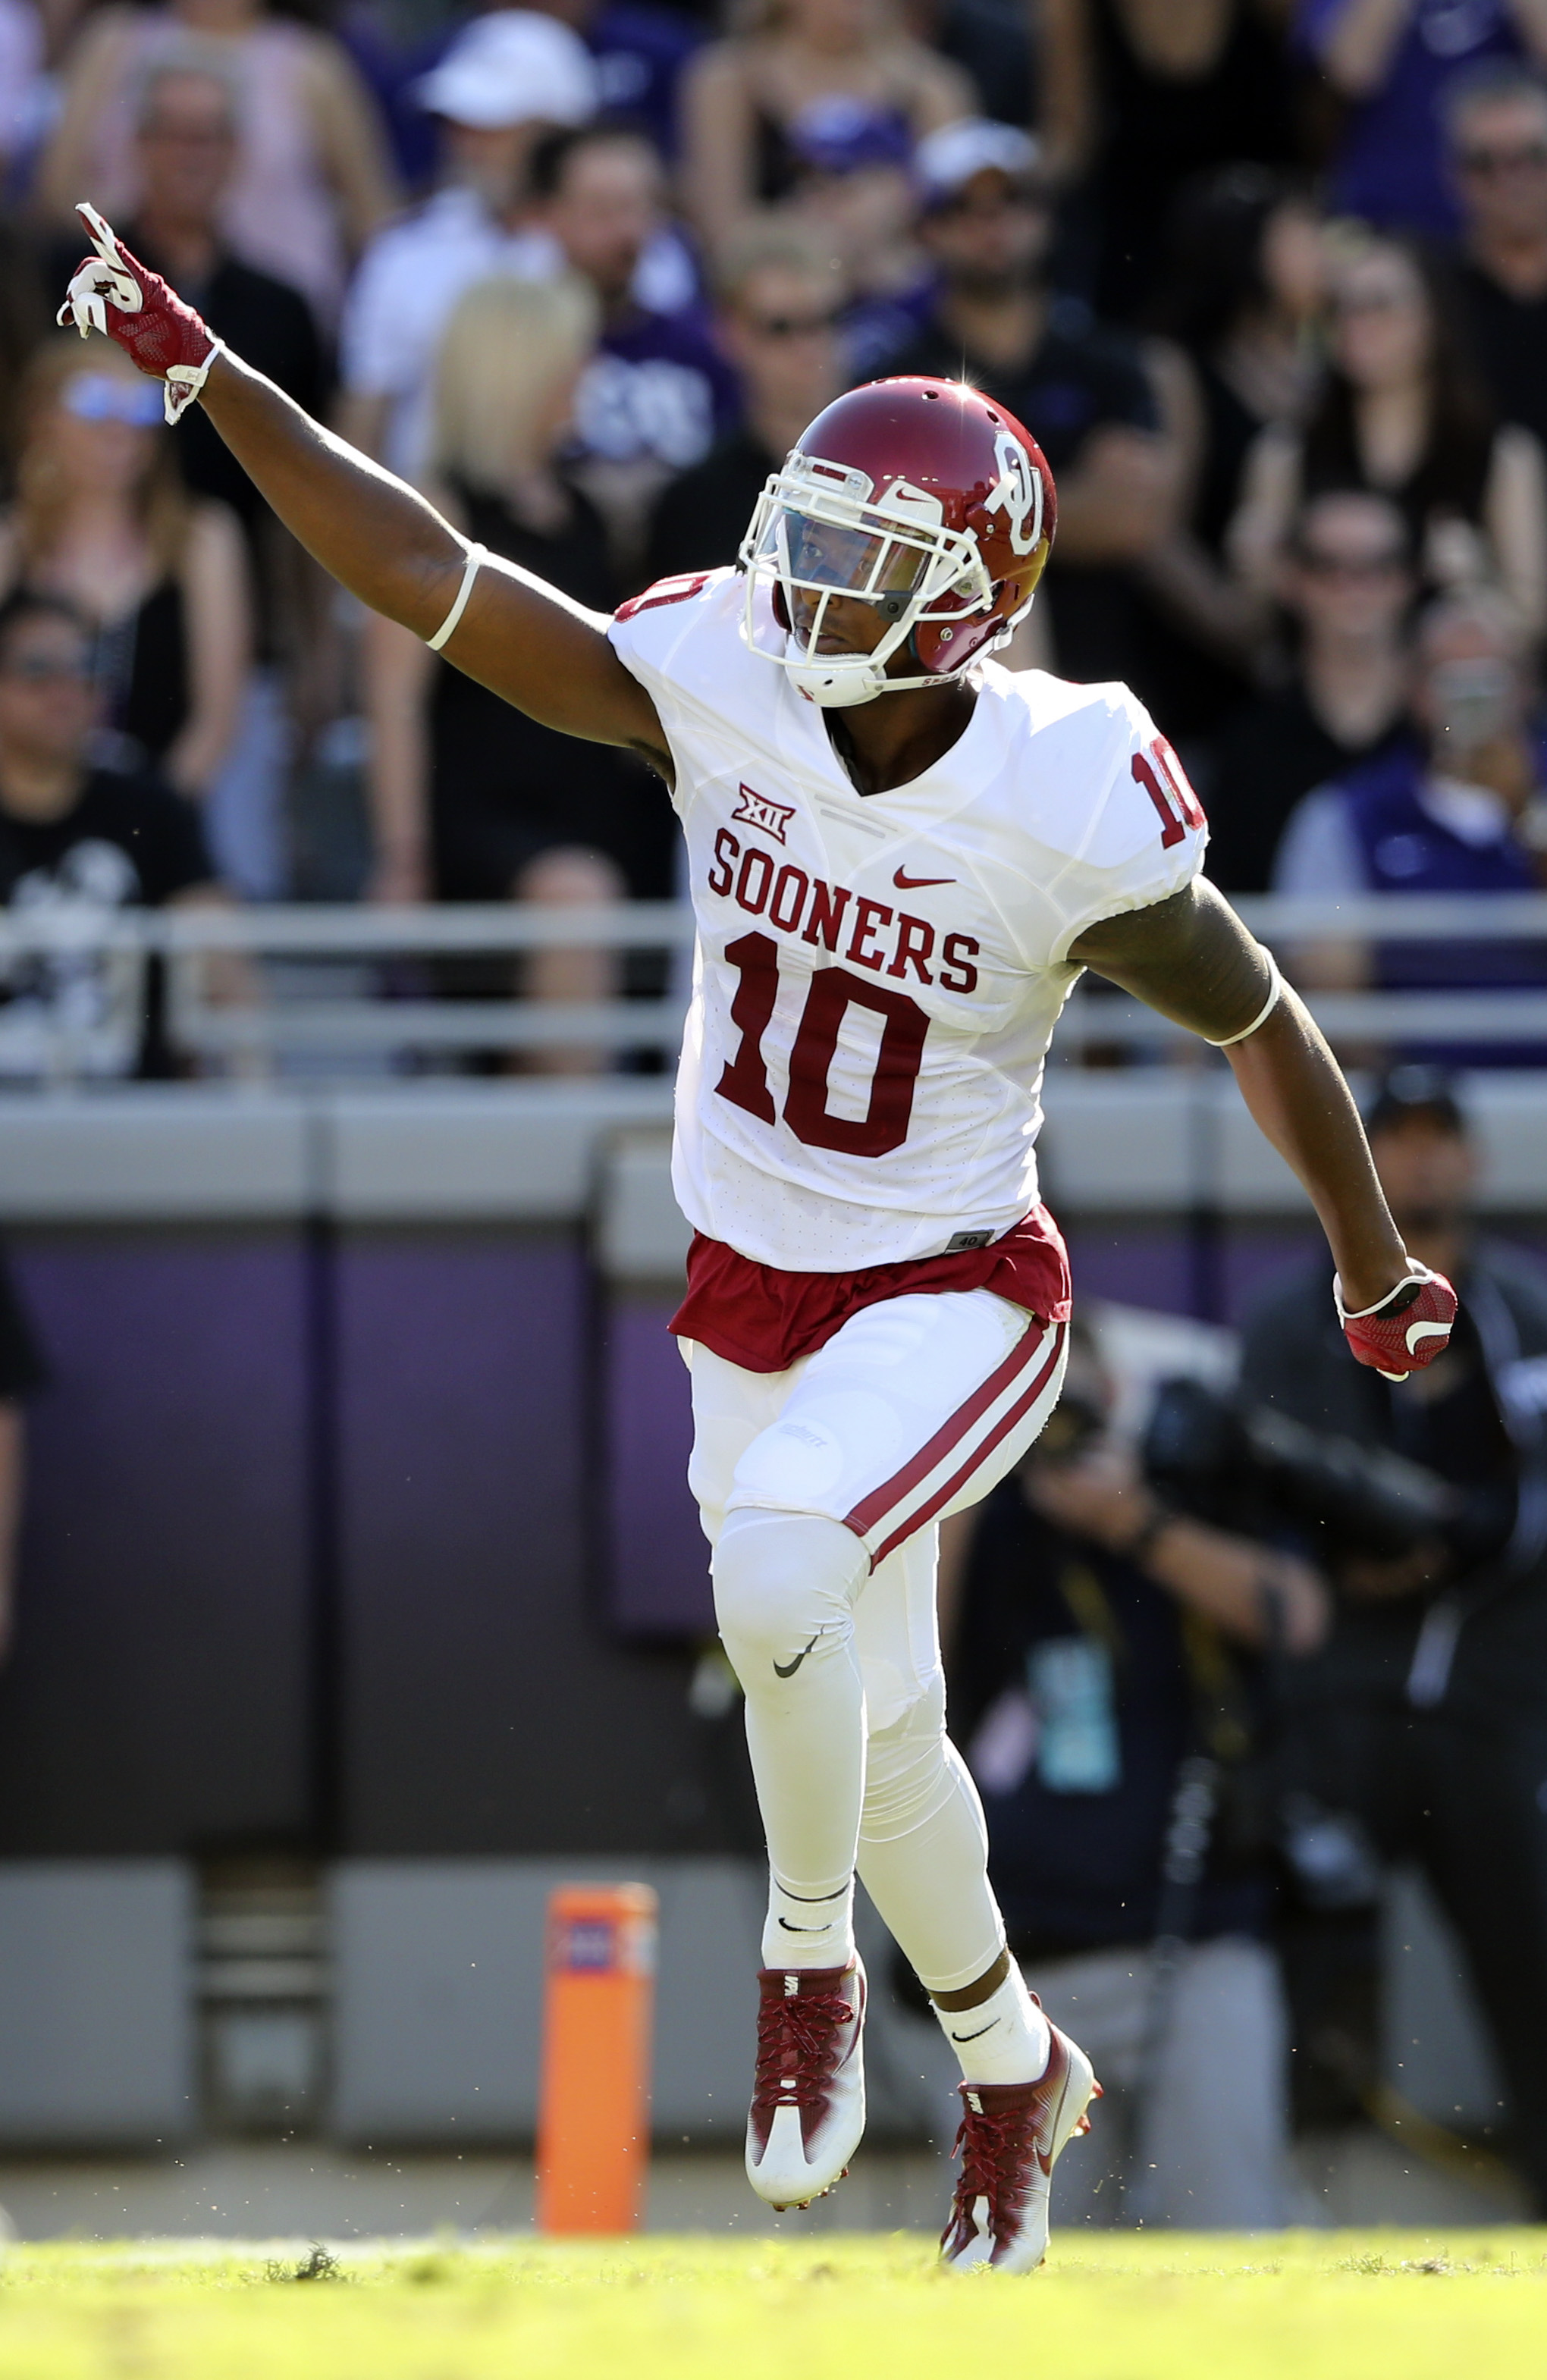 Oklahoma Sooners S Steven Parker intercepts a pass against the TCU Horned Frogs, October 1, 2016. Parker was one of six rookies signed by the LA Rams yesterday.